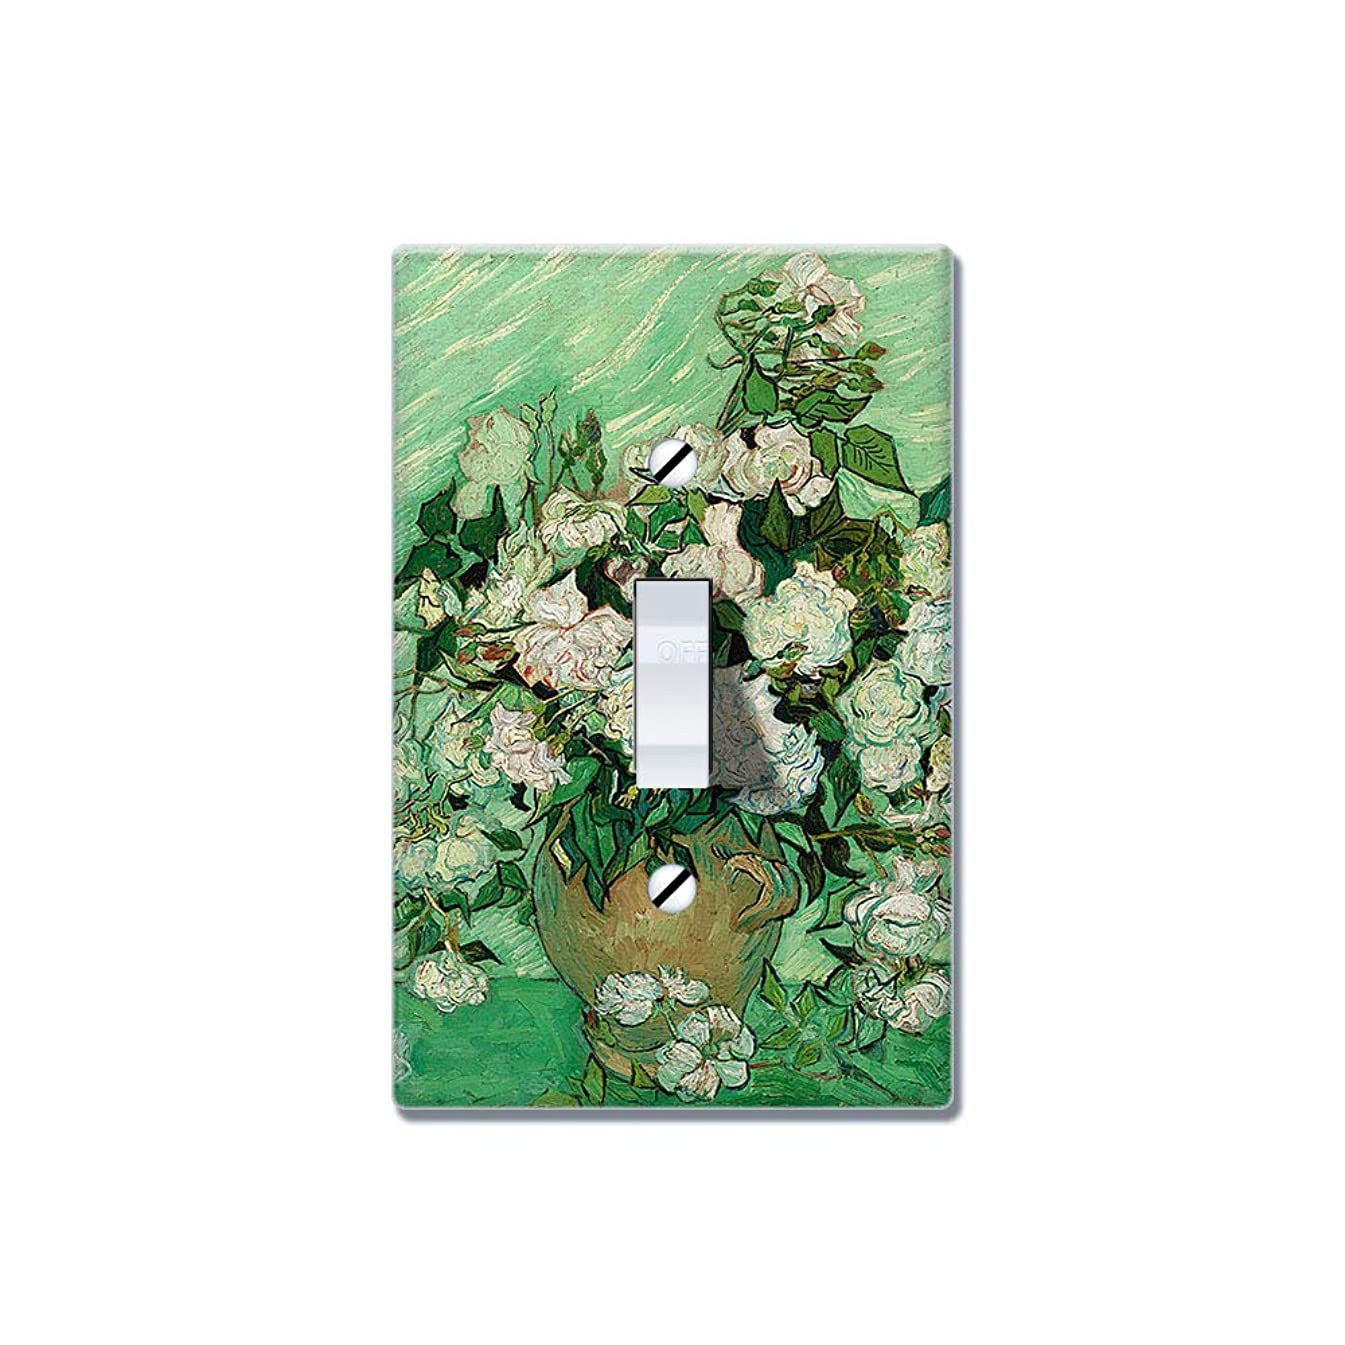 WIRESTER Single Gang Toggle Light Switch Plate/Wall Plate Cover - Vase With Pink Roses By Vincent Van Gogh